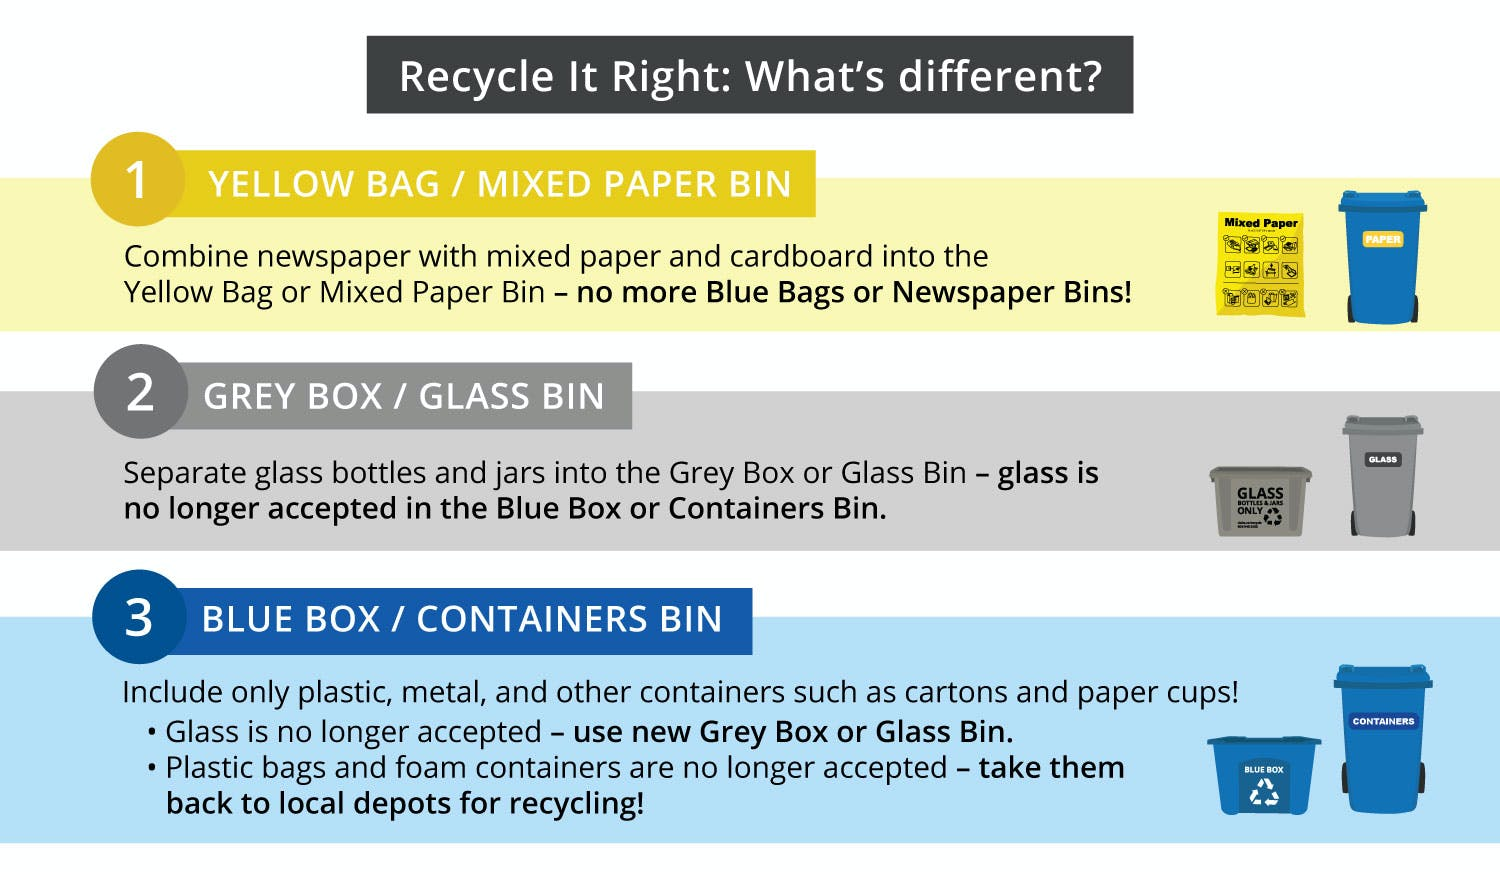 Recycle it Right: What's different?